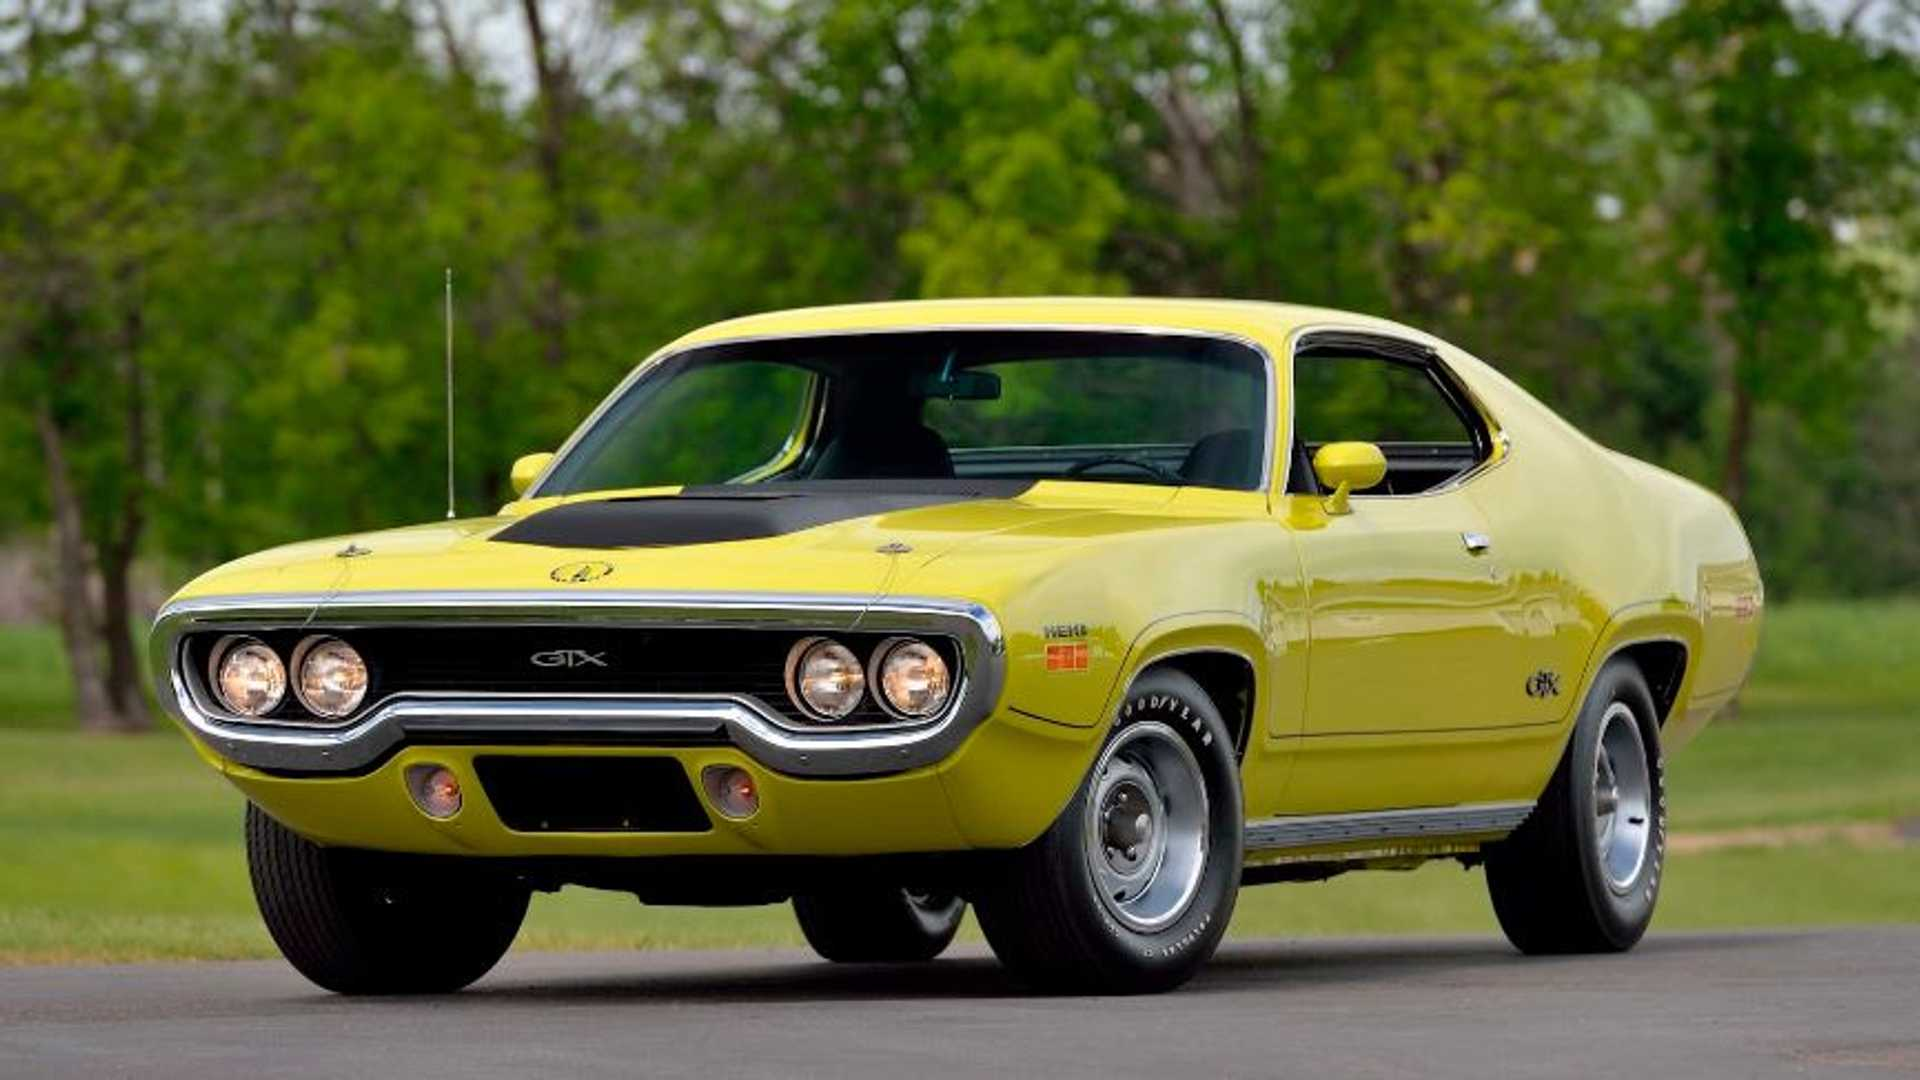 Ultra-Rare Restored 1971 Plymouth Hemi GTX Sold For $253K At Mecum